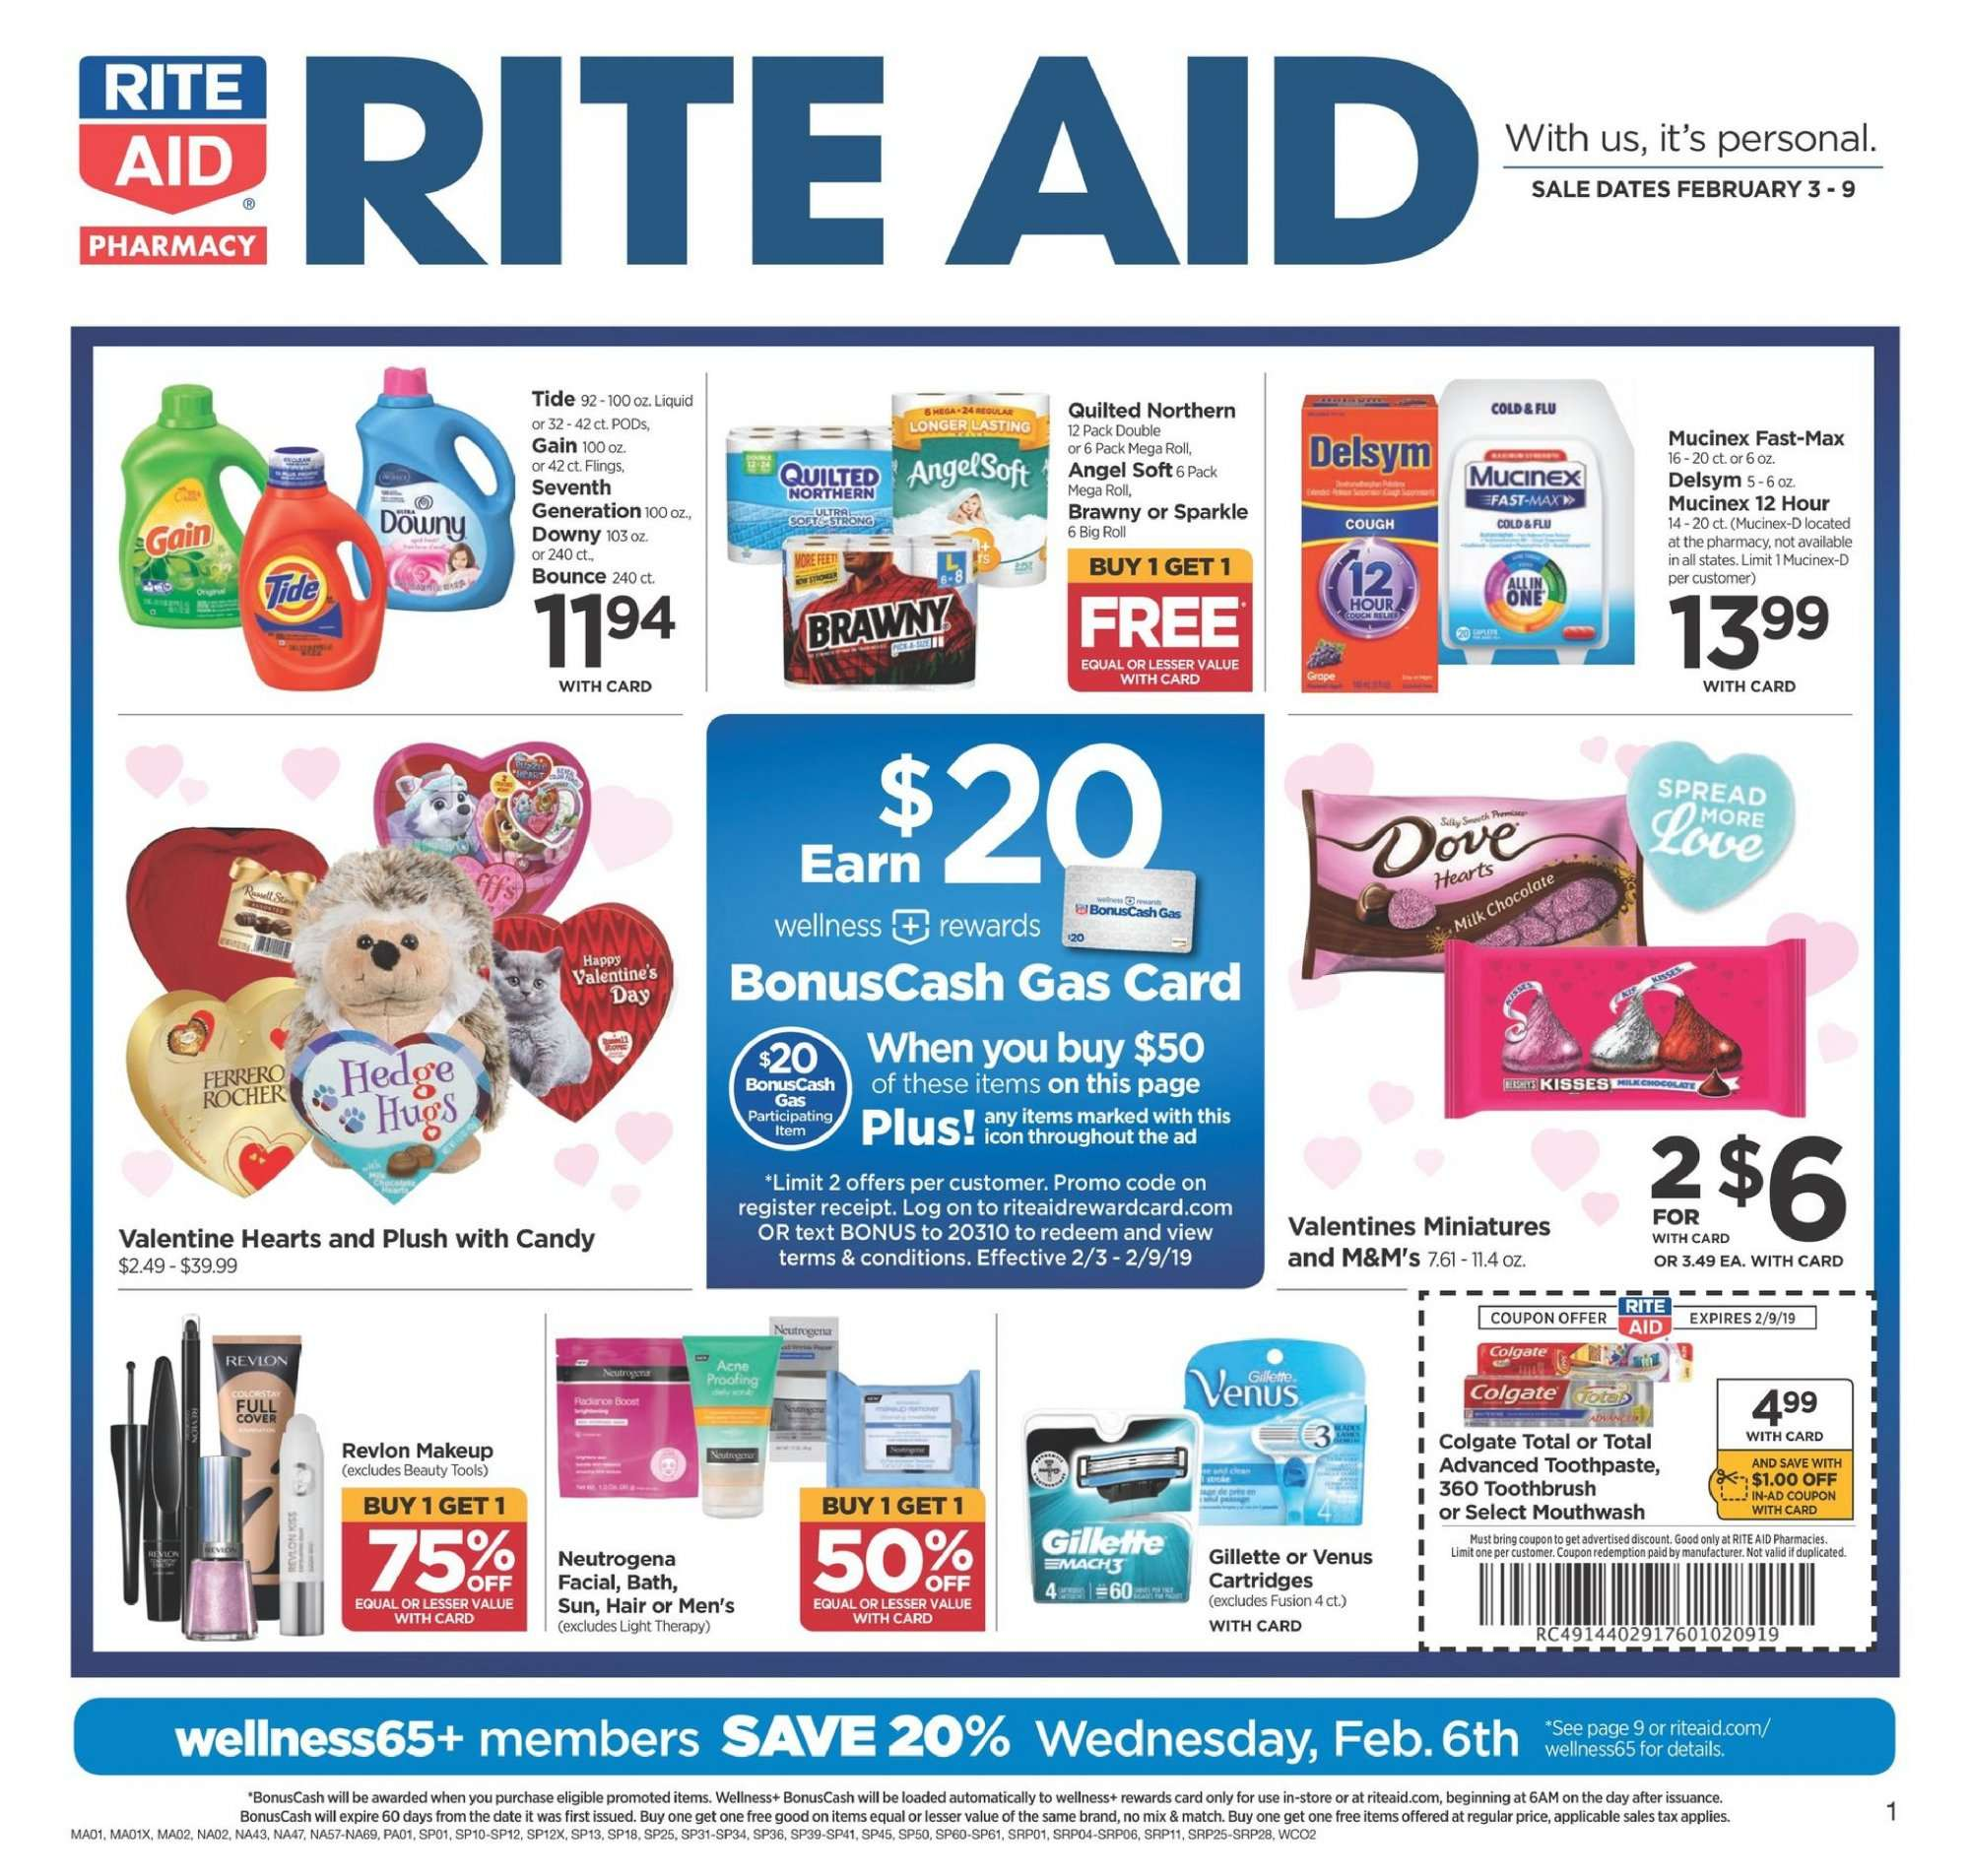 RITE AID Flyer - 02.04.2019 - 02.04.2019 - Sales products - milk chocolate, chocolate, M&M's, Quilted Northern, Gain, Downy, Tide, Colgate, toothbrush, toothpaste, mouthwash, Neutrogena, Revlon, Gillette, Venus, tools, makeup, Delsym, Cold & Flu, Mucinex. Page 1.